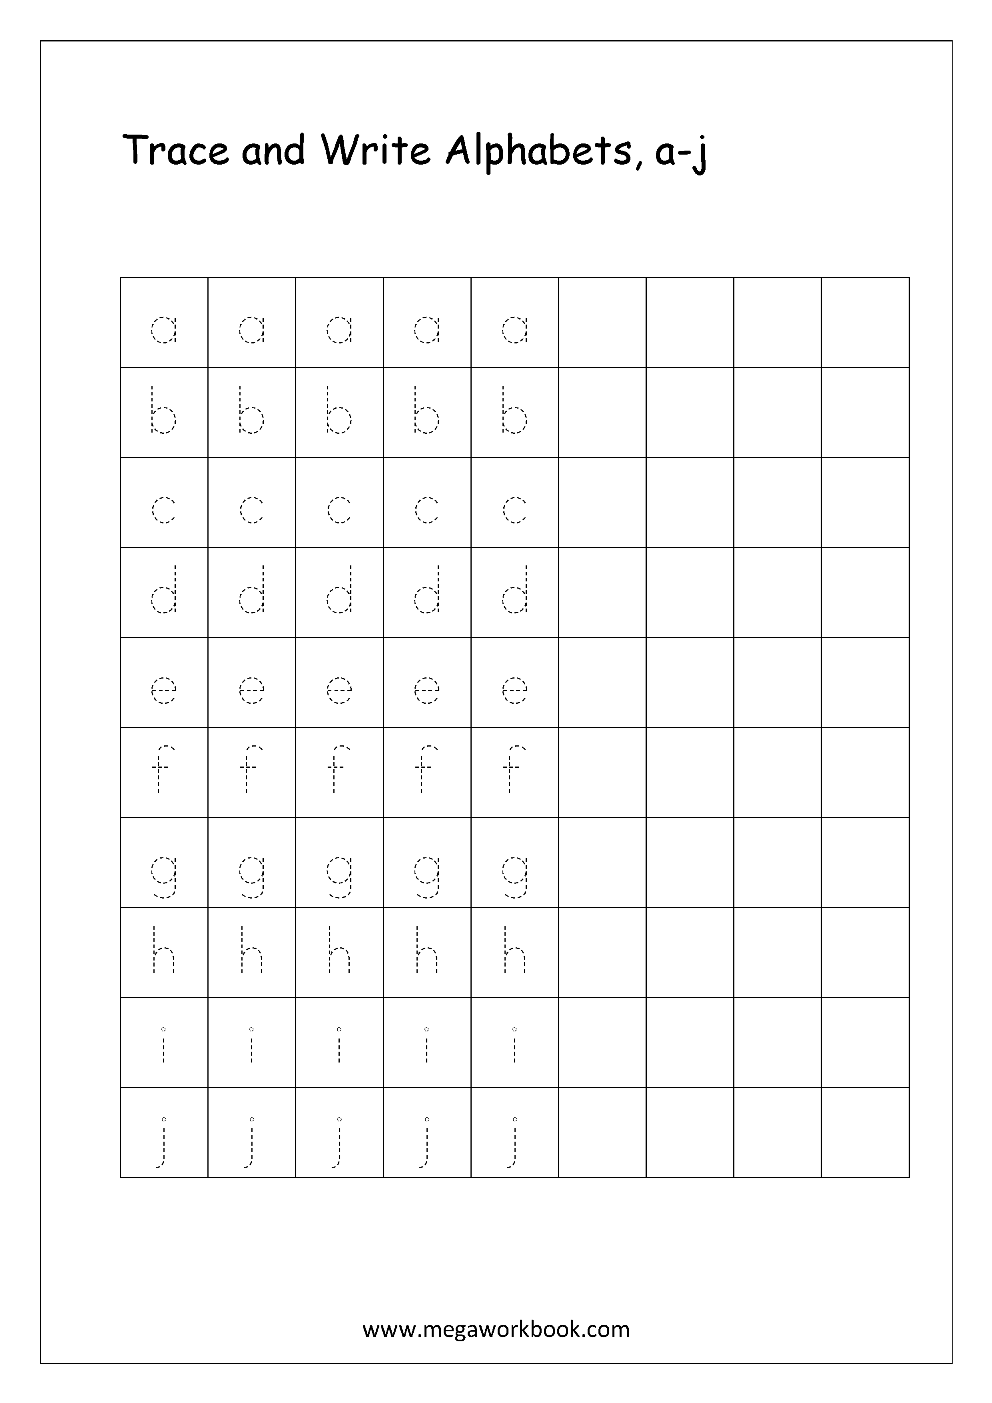 Free english worksheets alphabet writing small letters letter english worksheet alphabet writing small letters a j expocarfo Images